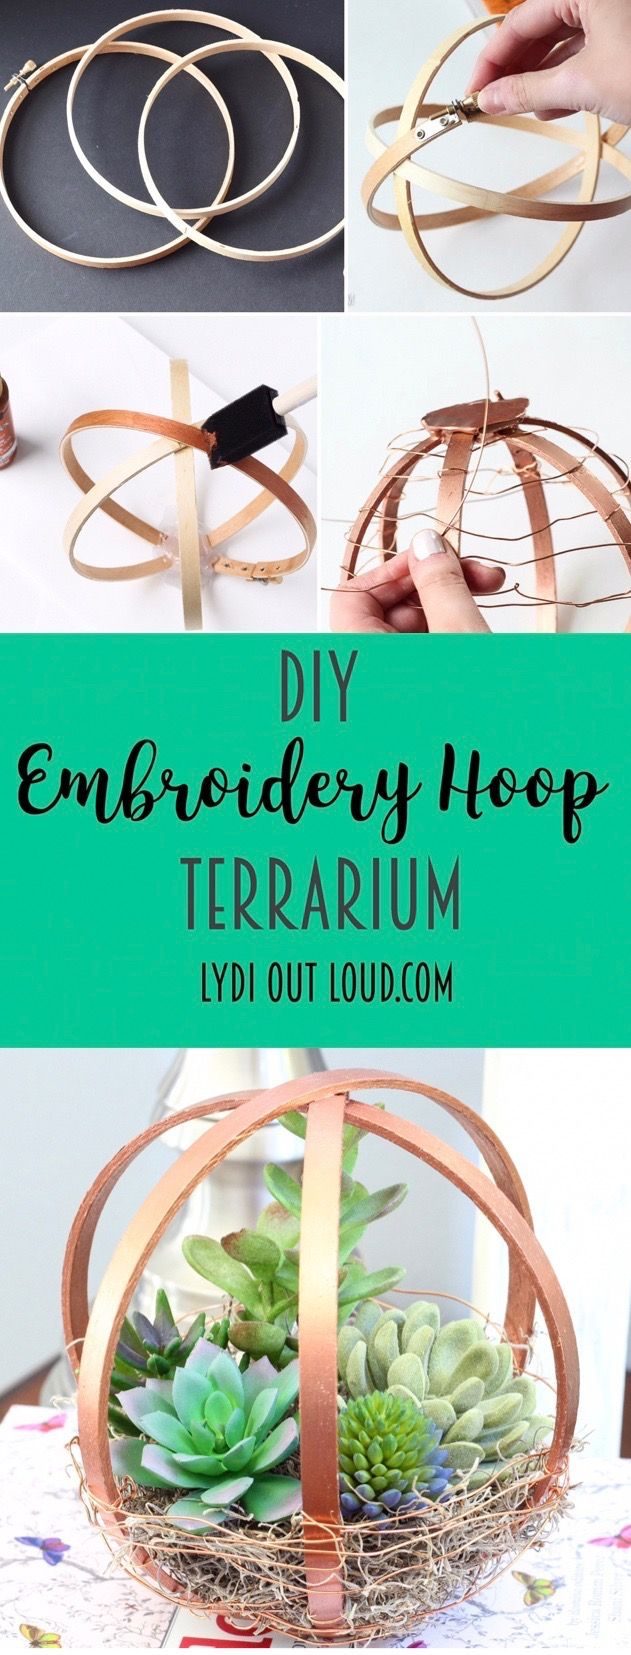 DIY Terrarium with embroidery hoops!